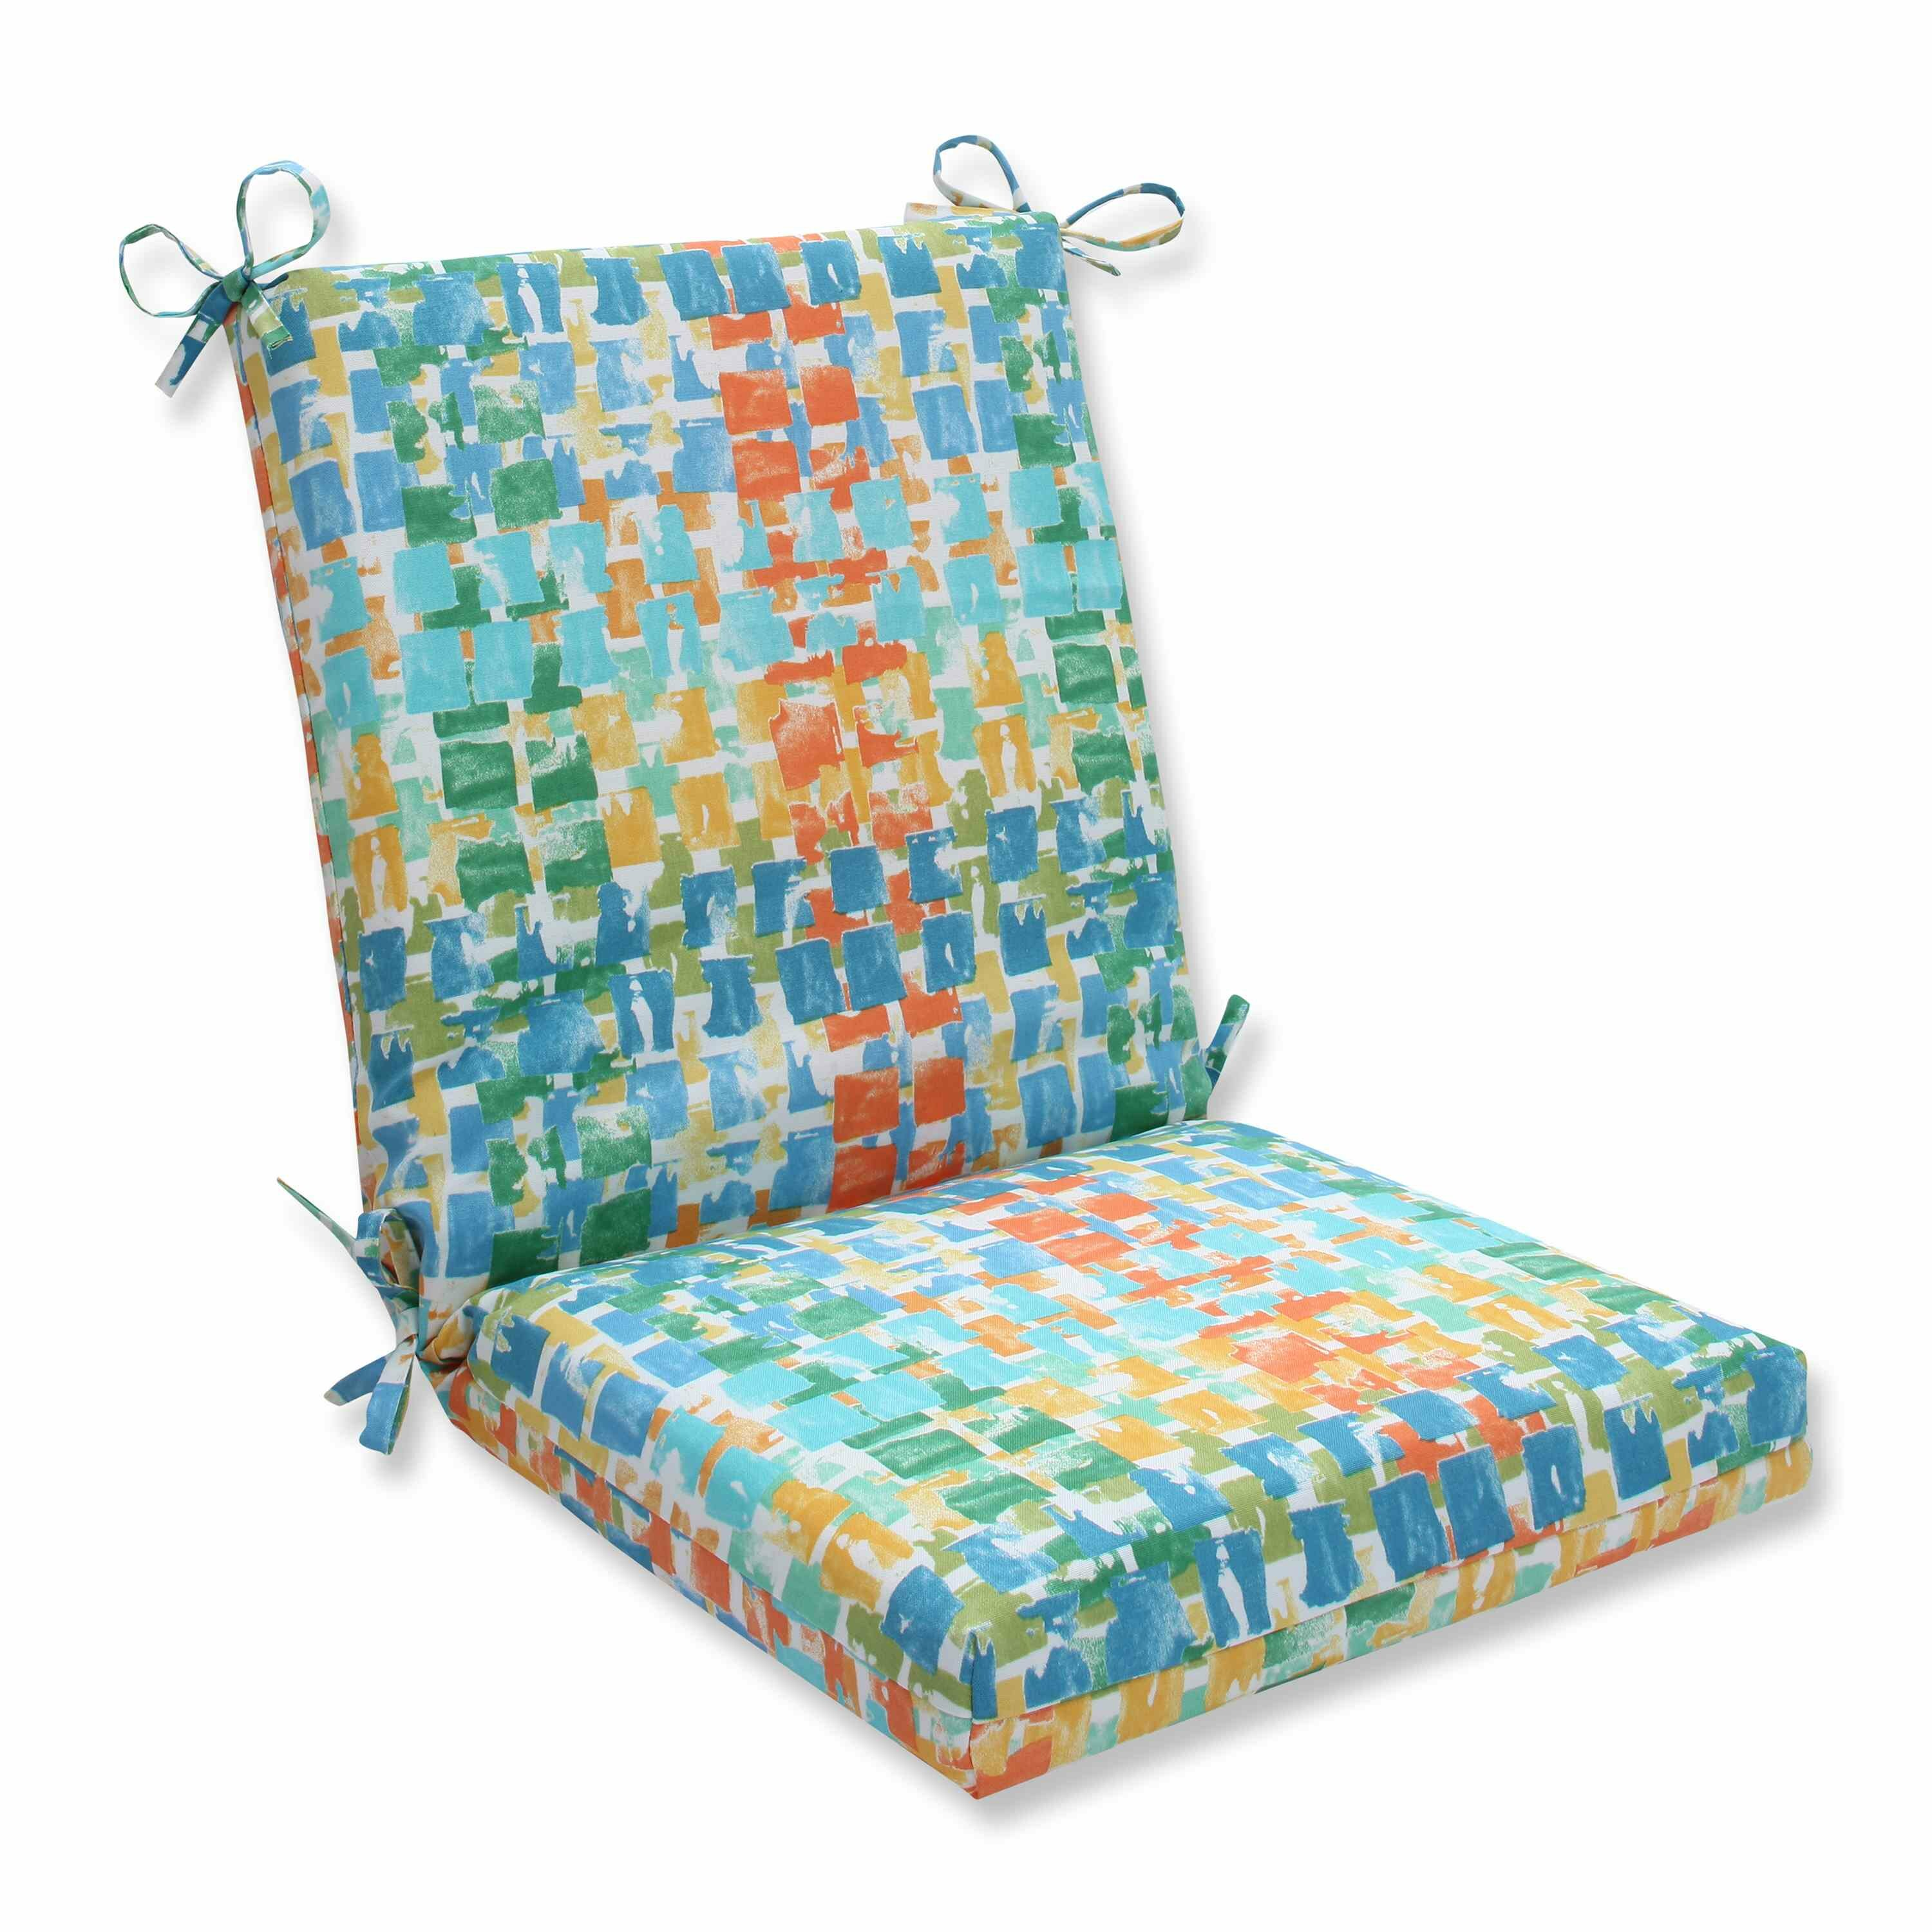 Pillow Perfect Quibble Sunsplash Outdoor Dining Chair Cushion